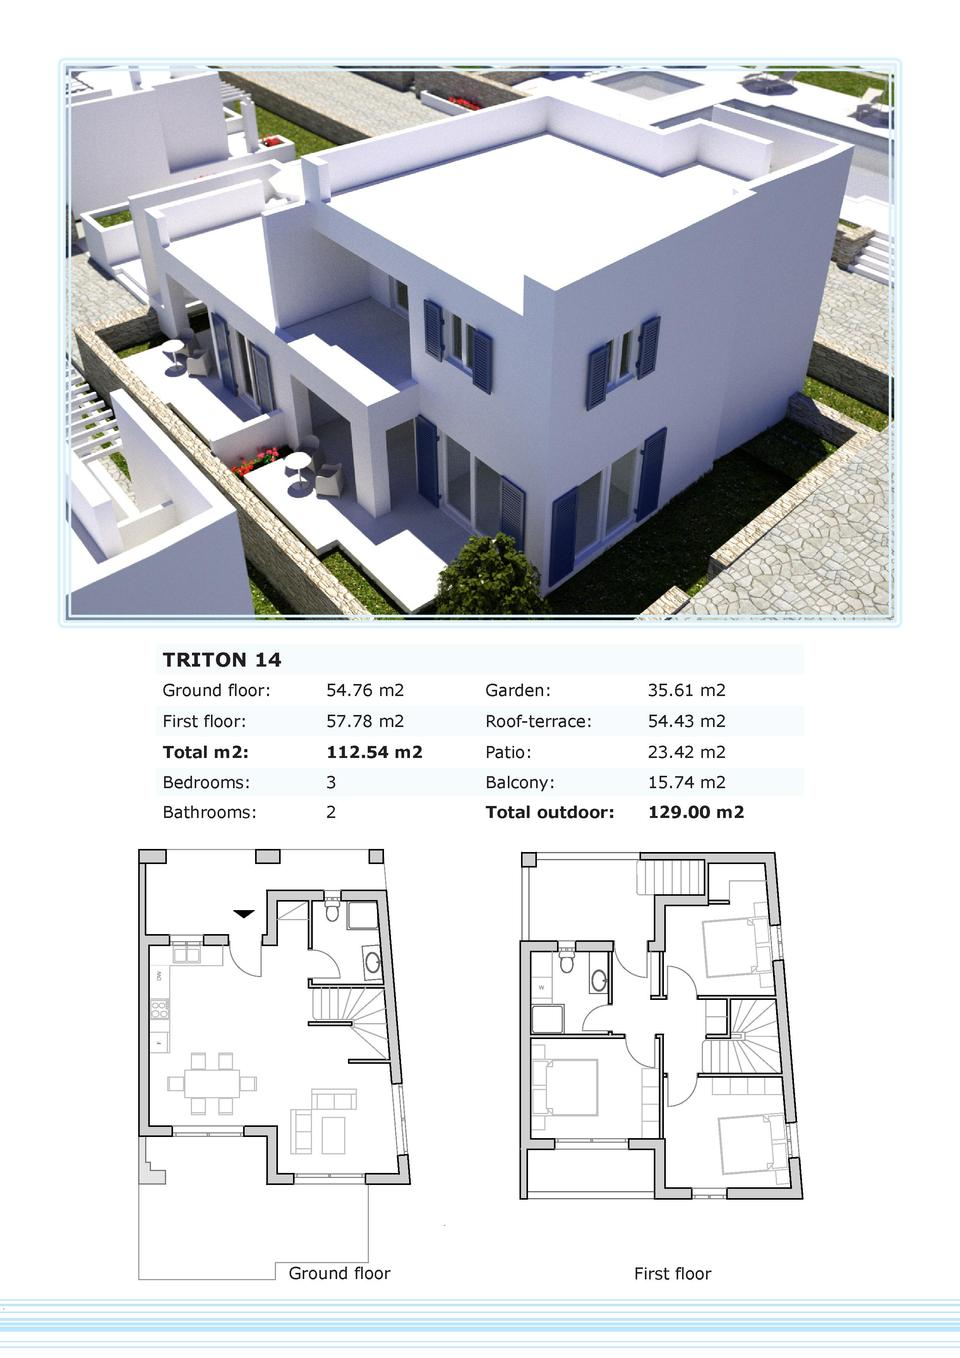 TRITON 14 Ground floor   54.76 m2  Garden   35.61 m2  First floor   57.78 m2  Roof-terrace   54.43 m2  Total m2   112.54 m...